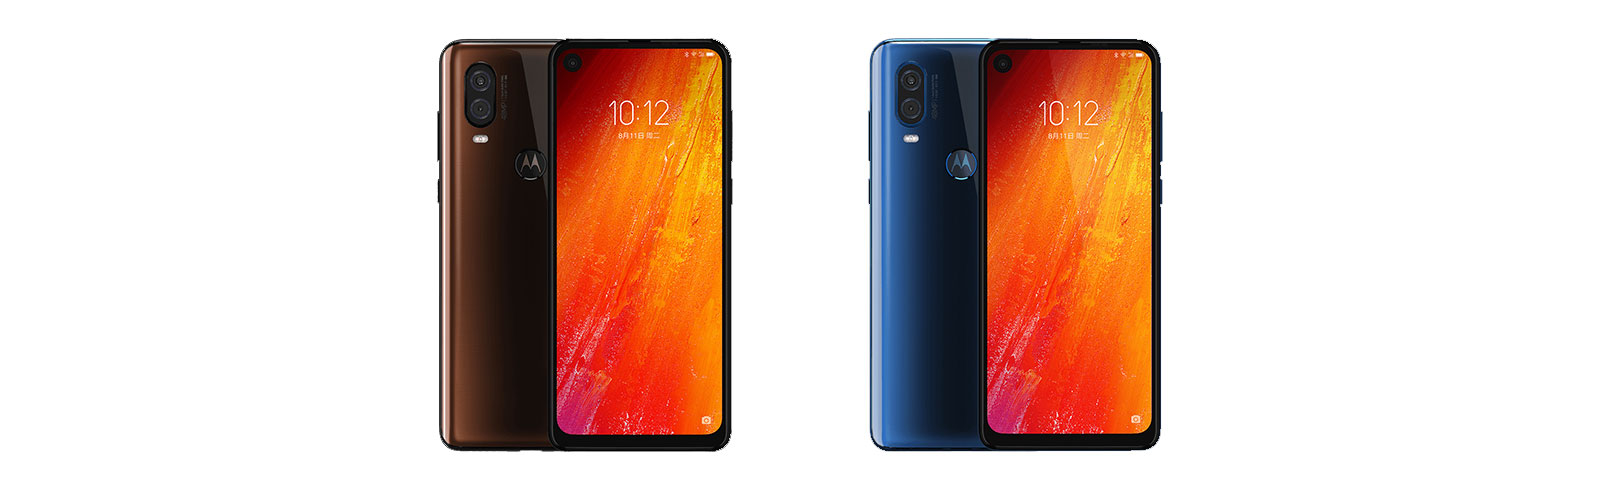 Motorola P50 can now be ordered in China